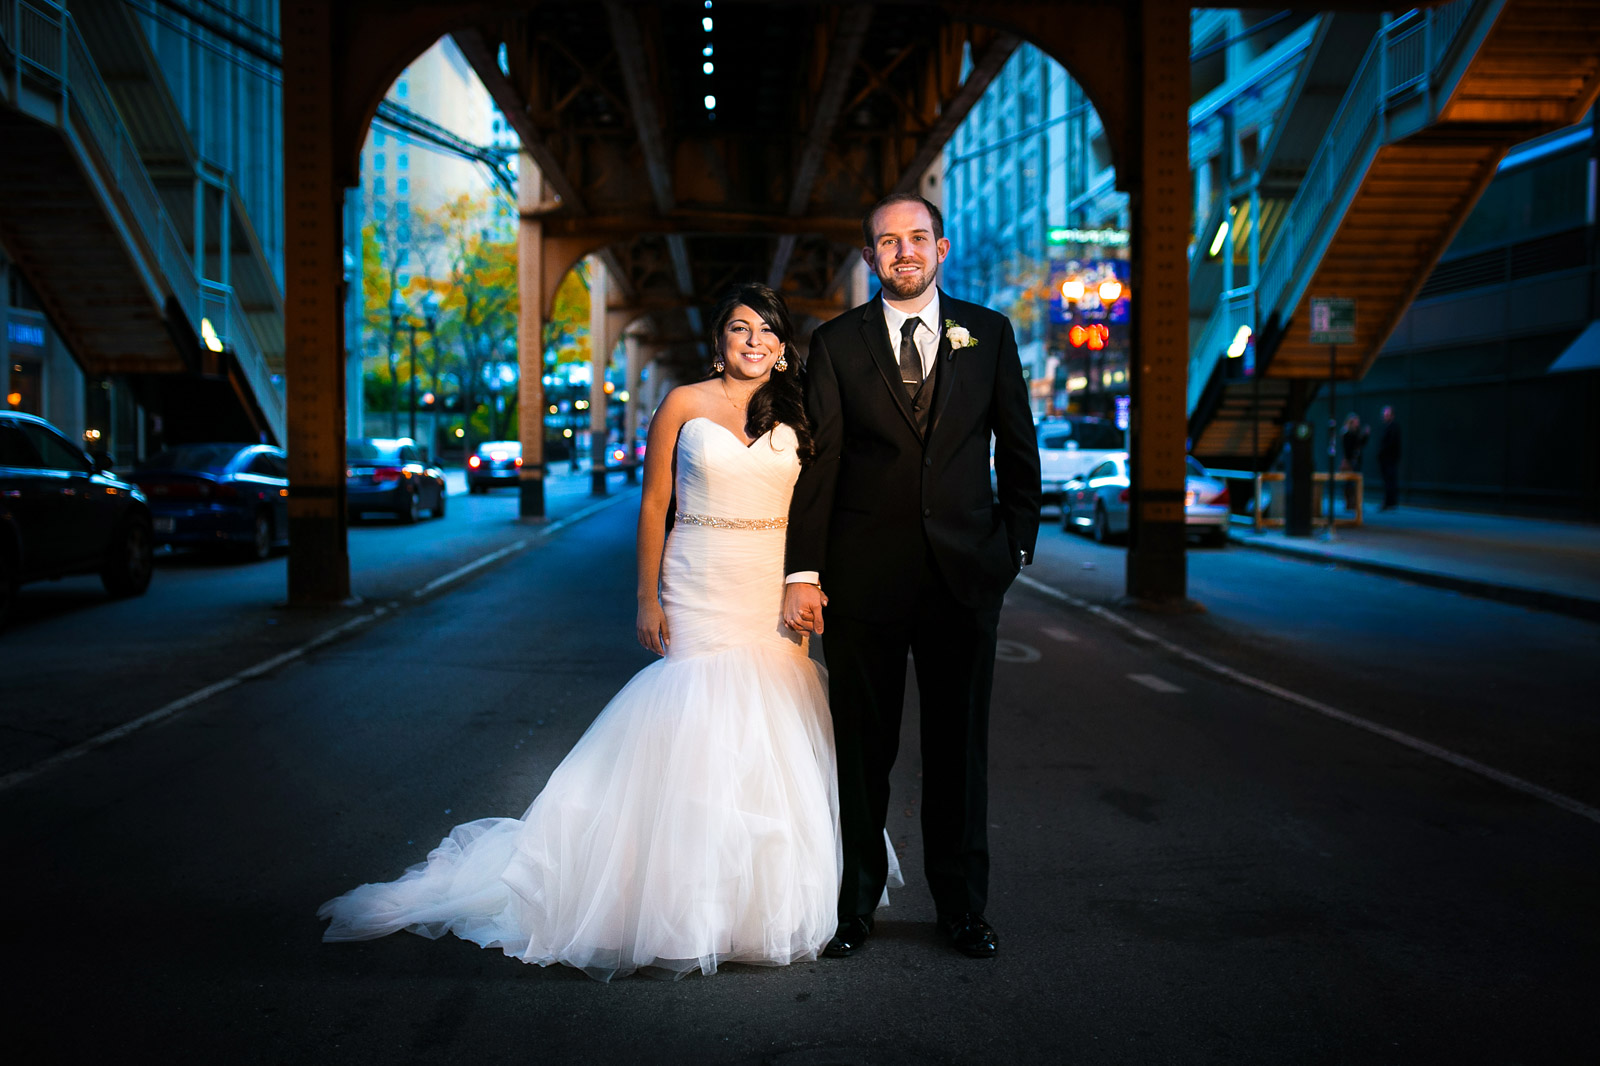 Bride and Groomo in street under Chicago EL train track